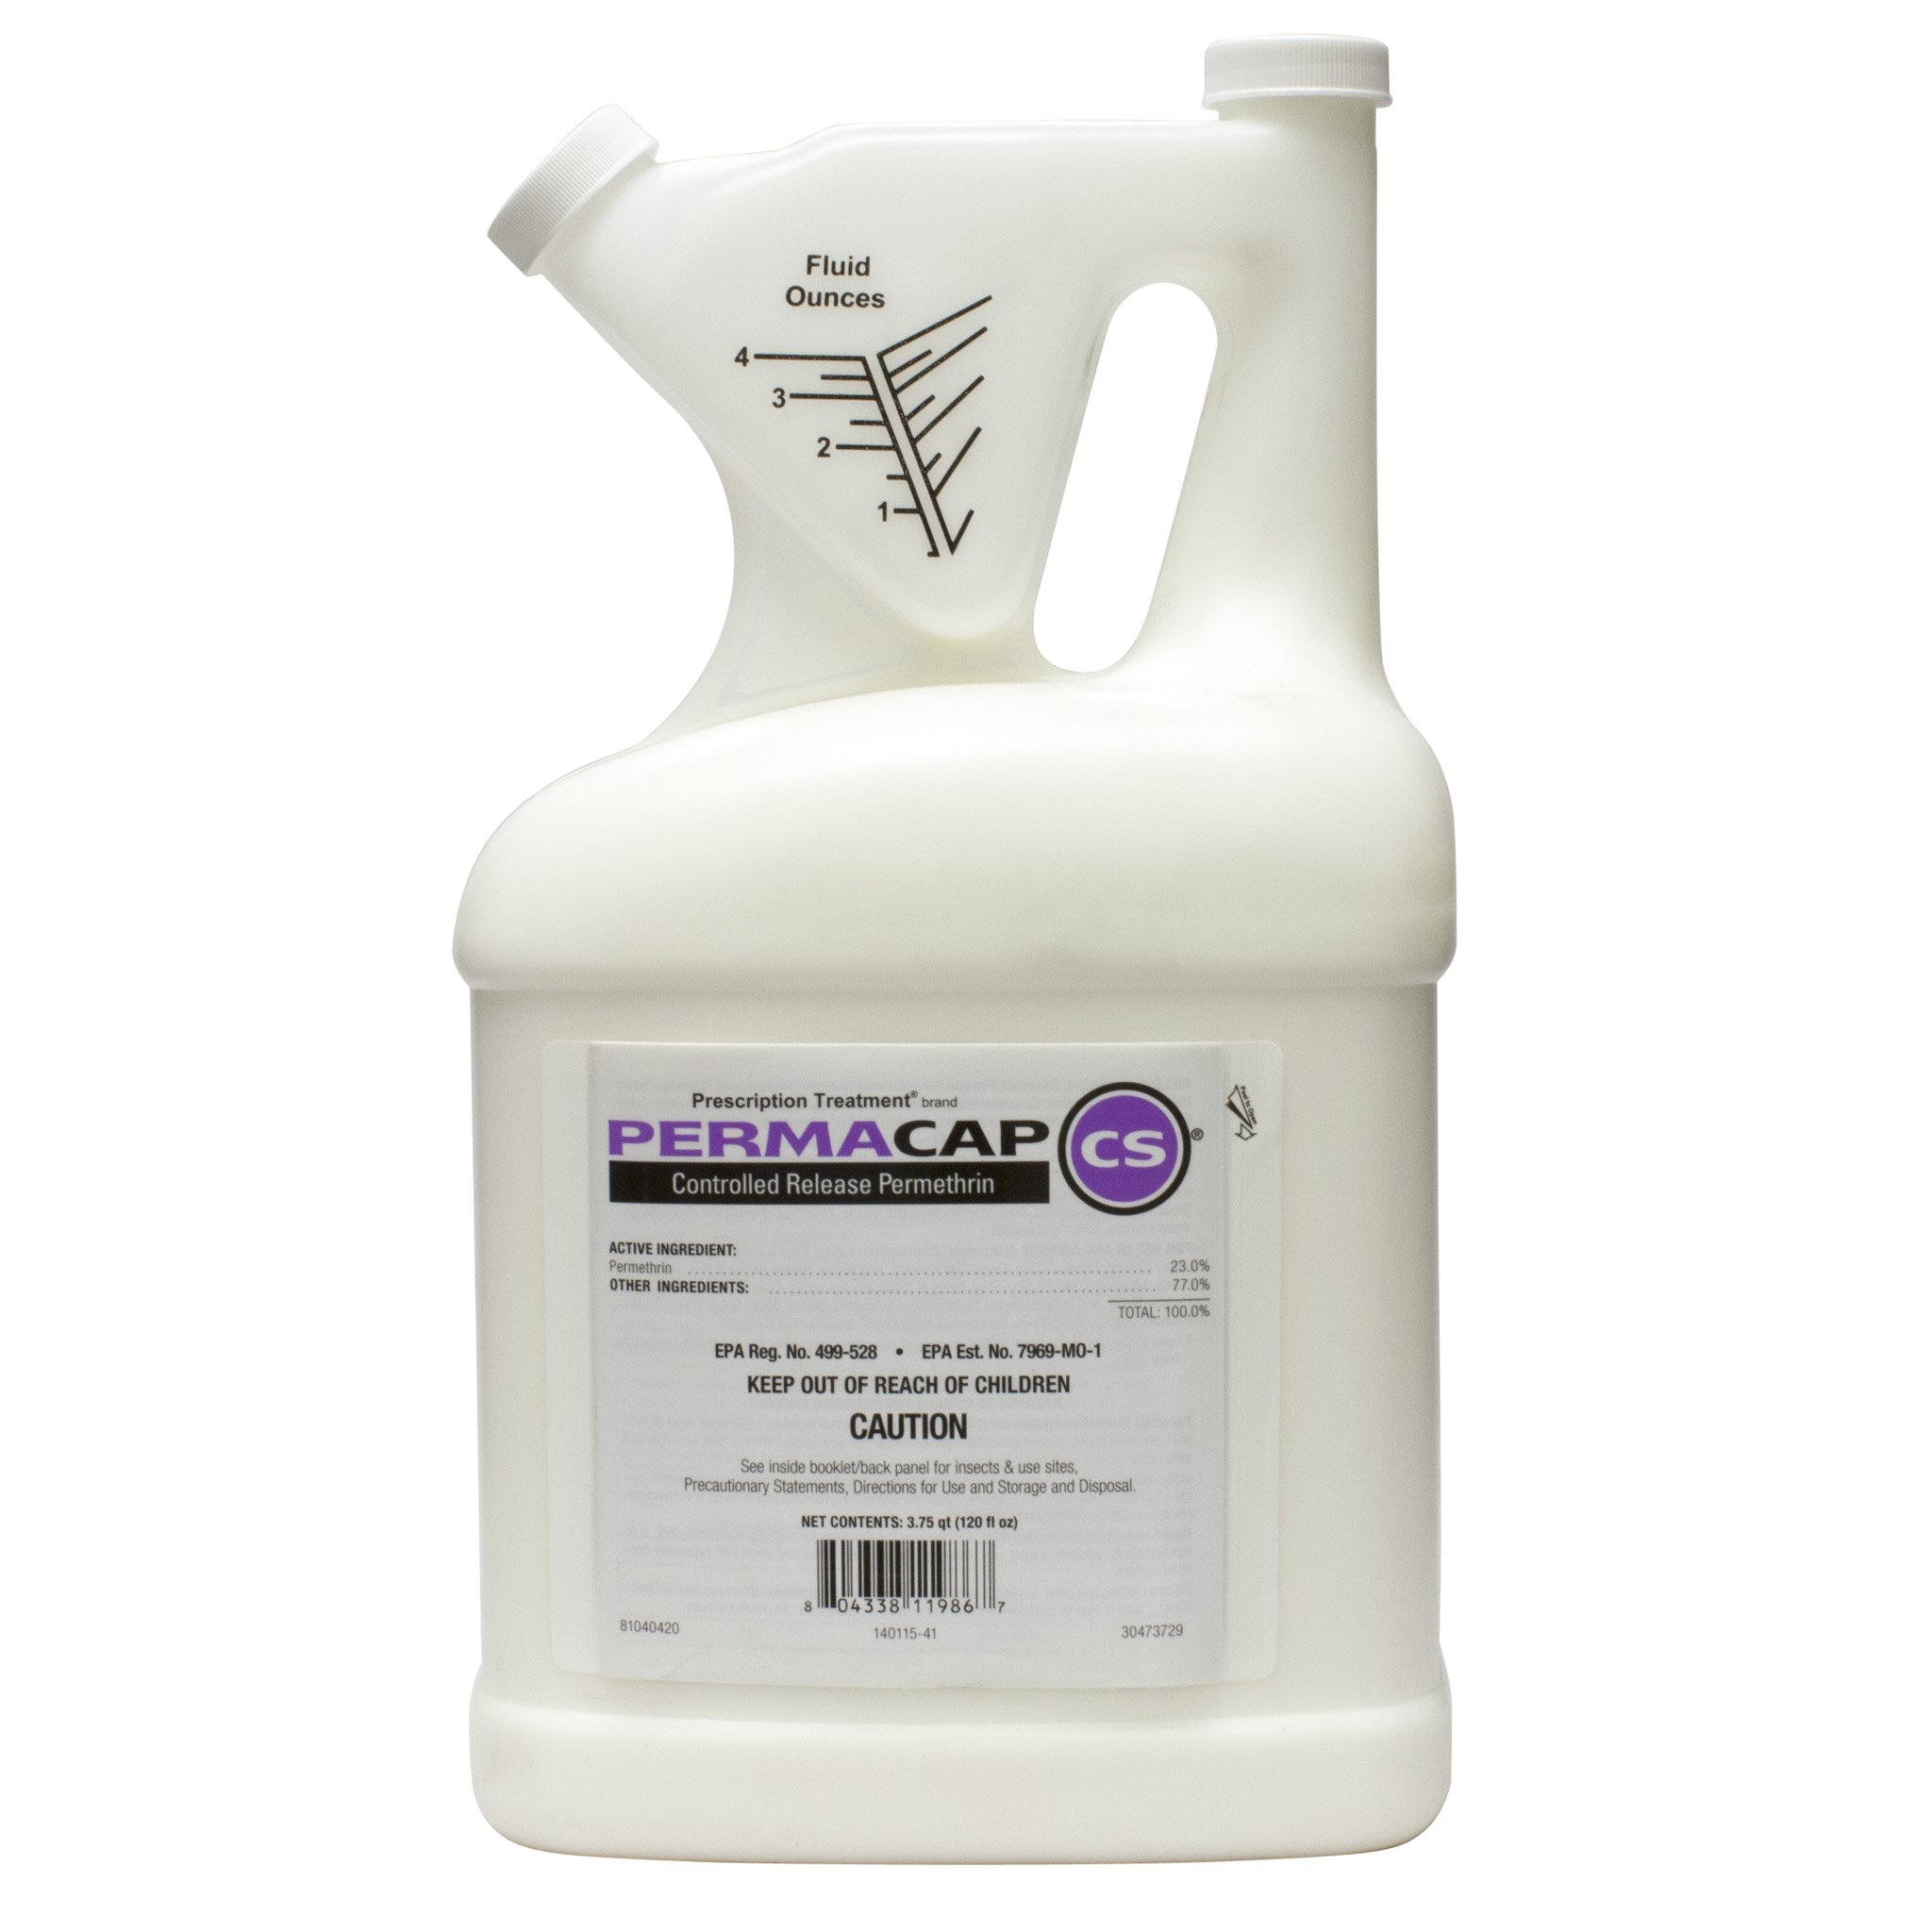 PermaCap CS(Controlled Release Permethrin) 120 Oz. by BASF